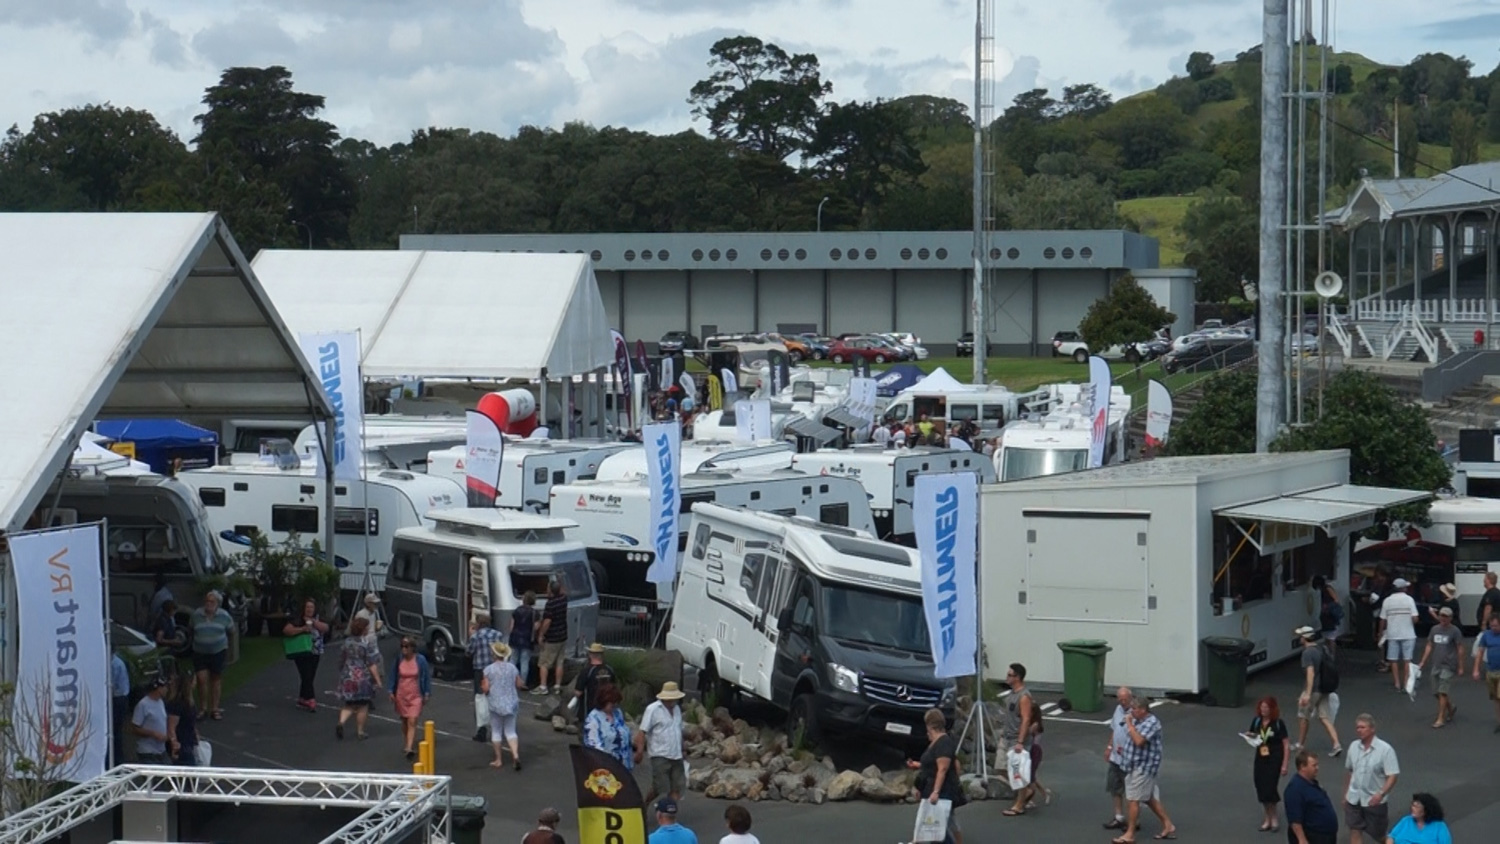 Exploring the Covi Motorhome, Caravan & Outdoor Supershow